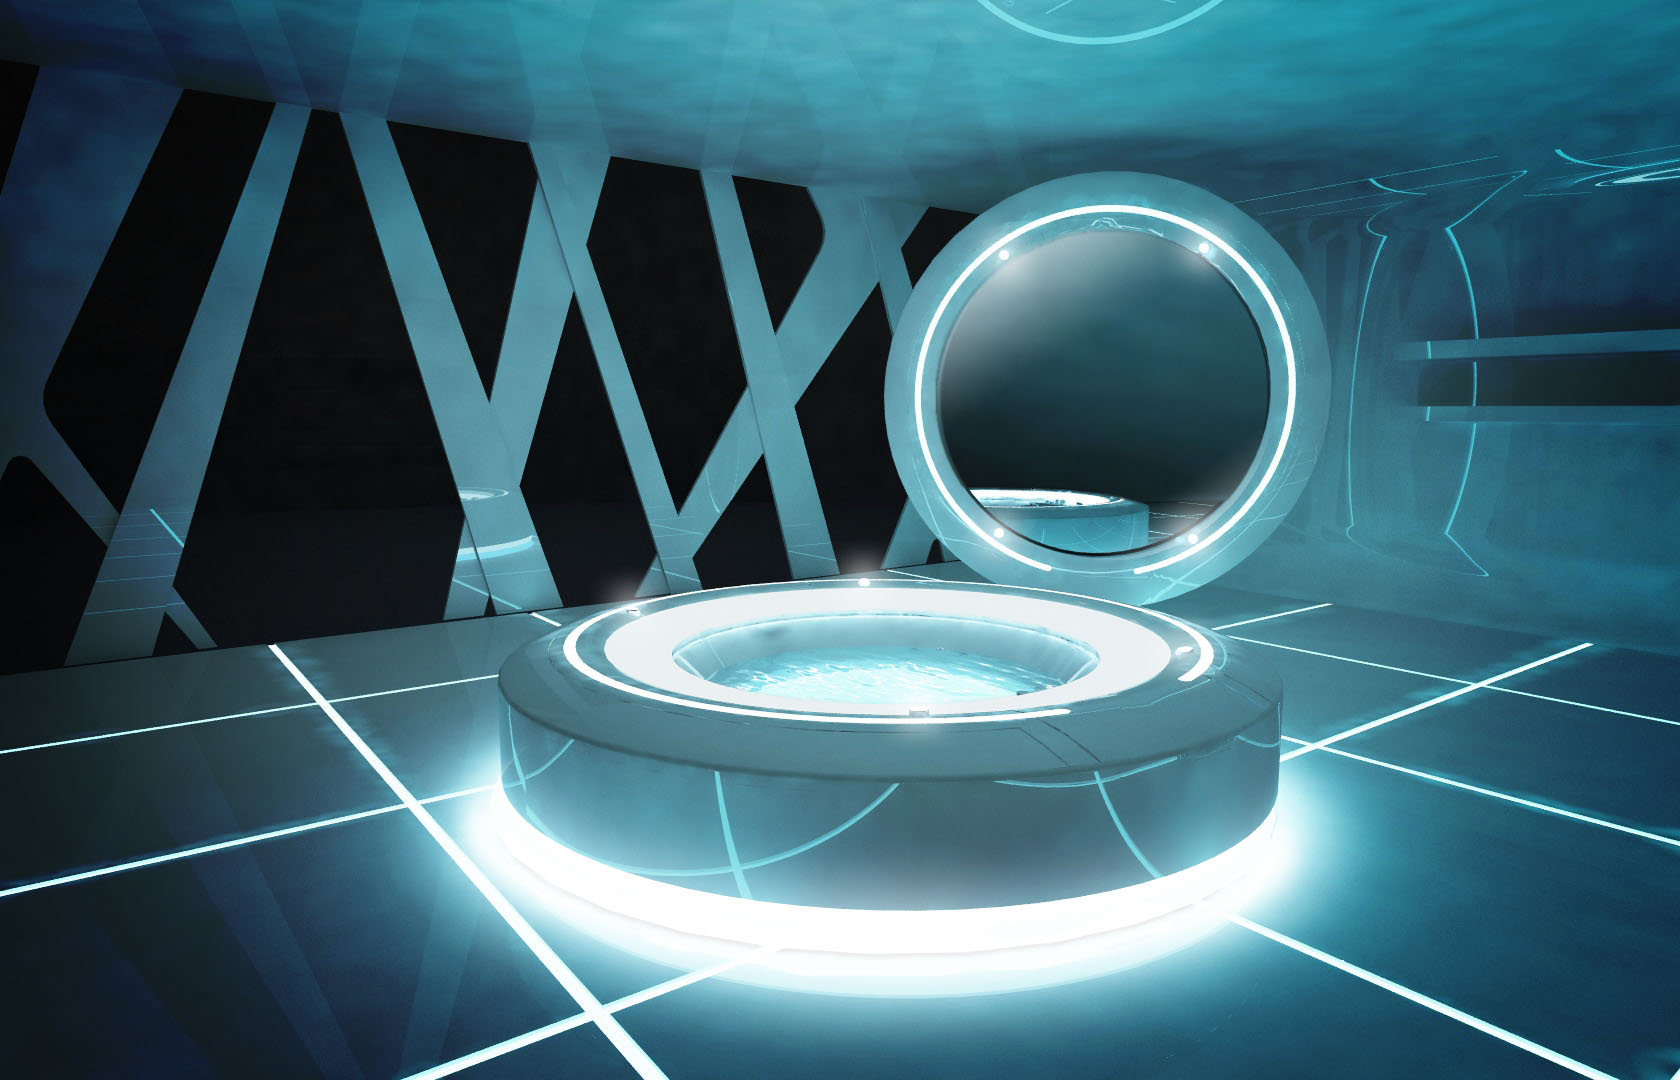 Specials designs tron legacy for Jacuzzi design